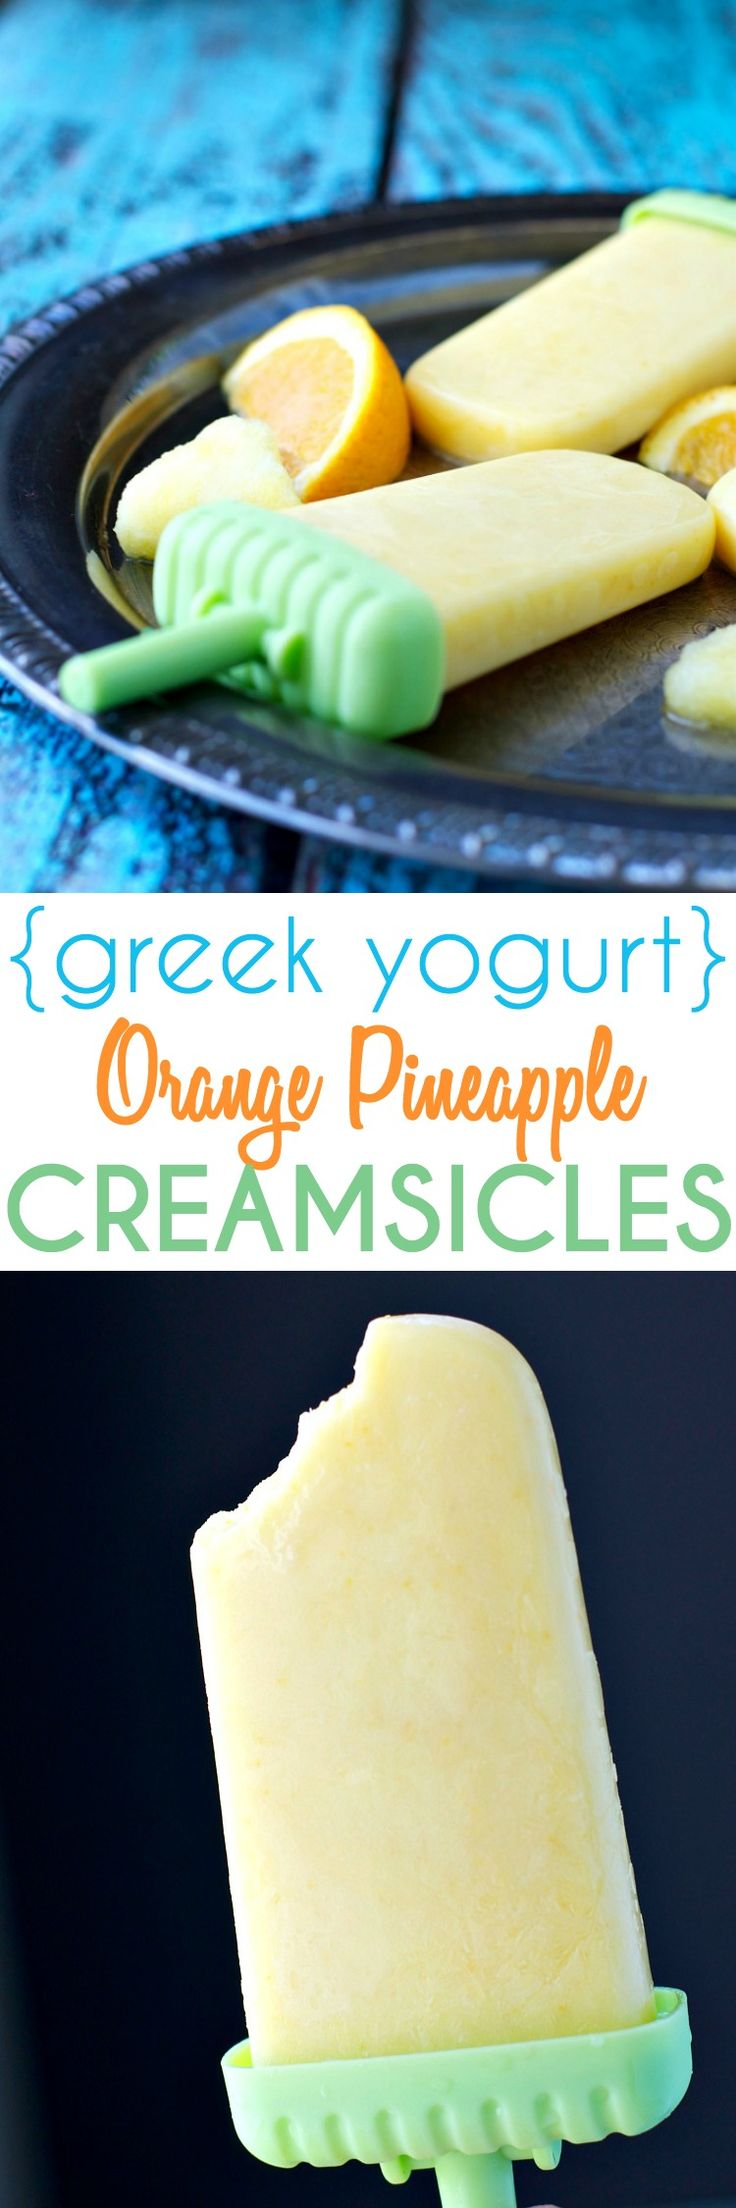 For about 40 calories you can enjoy these cool and creamy Greek Yogurt Orange Pineapple Creamsicles that are bursting with tropical citrus flavor! And with no added sugar, the homemade popsicles are healthy enough to eat for breakfast, snack or dessert!